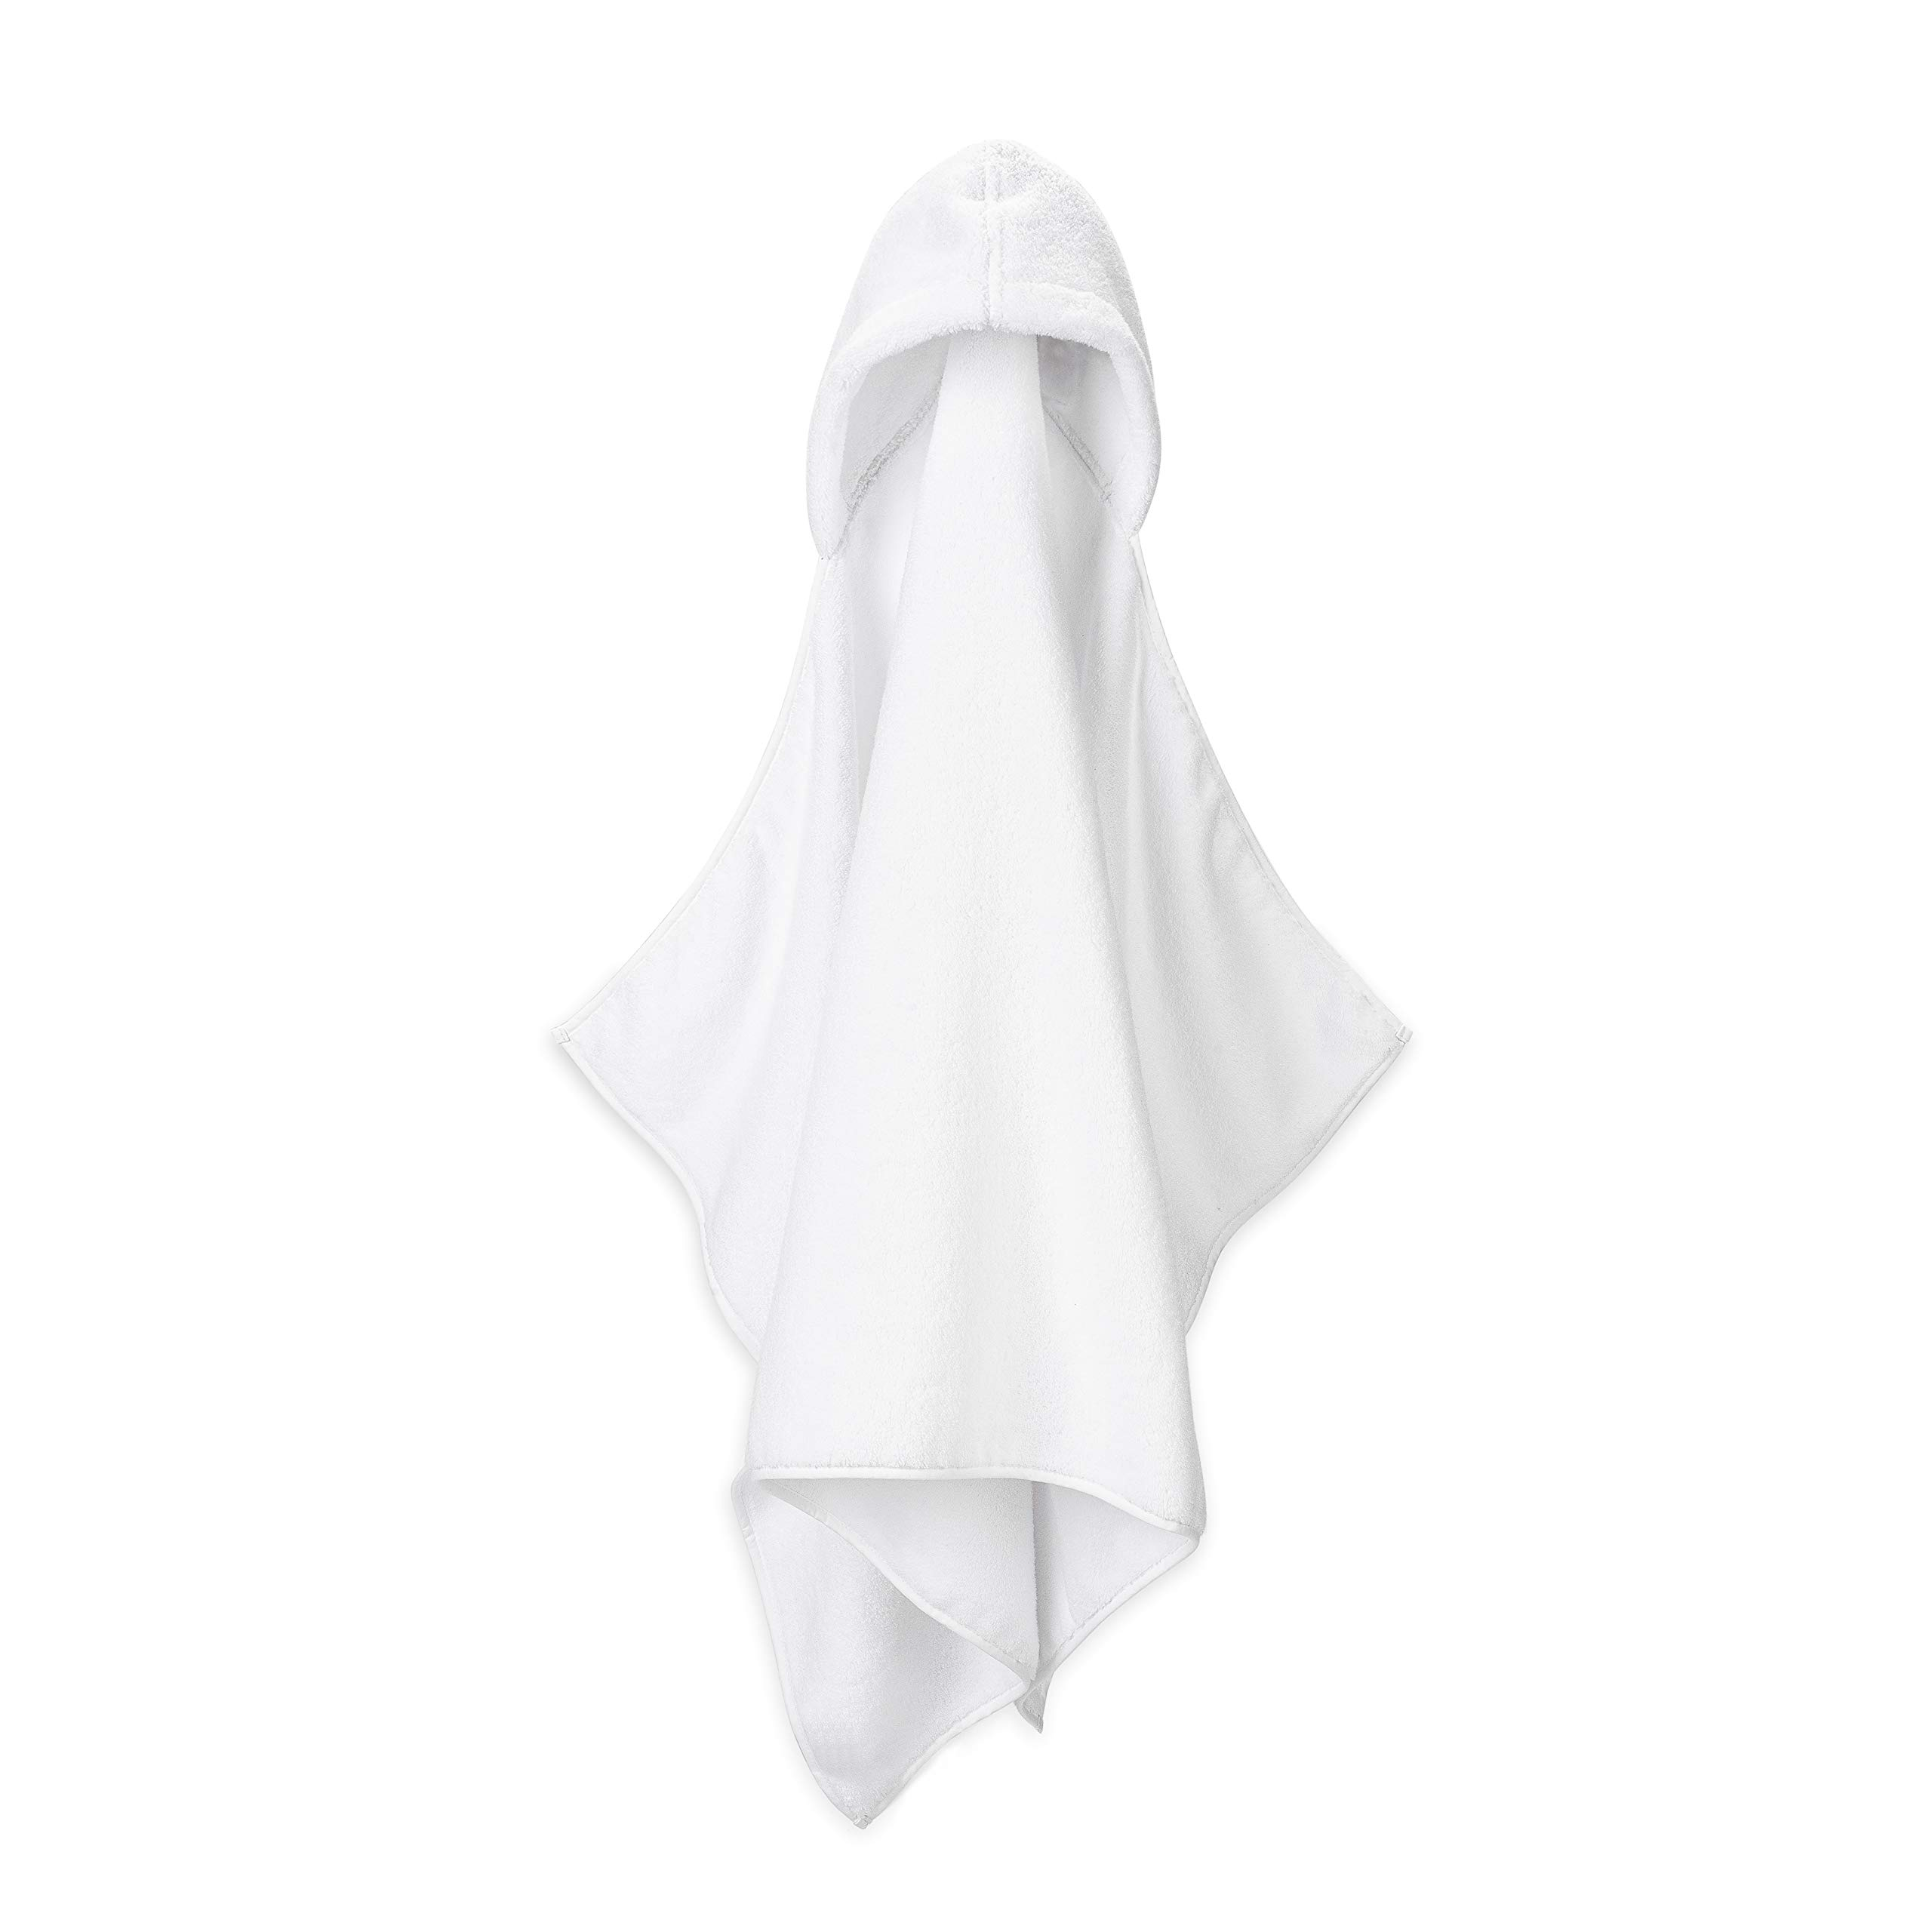 Premium 100% Soft Ring Spun Cotton Hooded Baby and Toddler Bath Towel by Parker Baby Co. - Infant Size